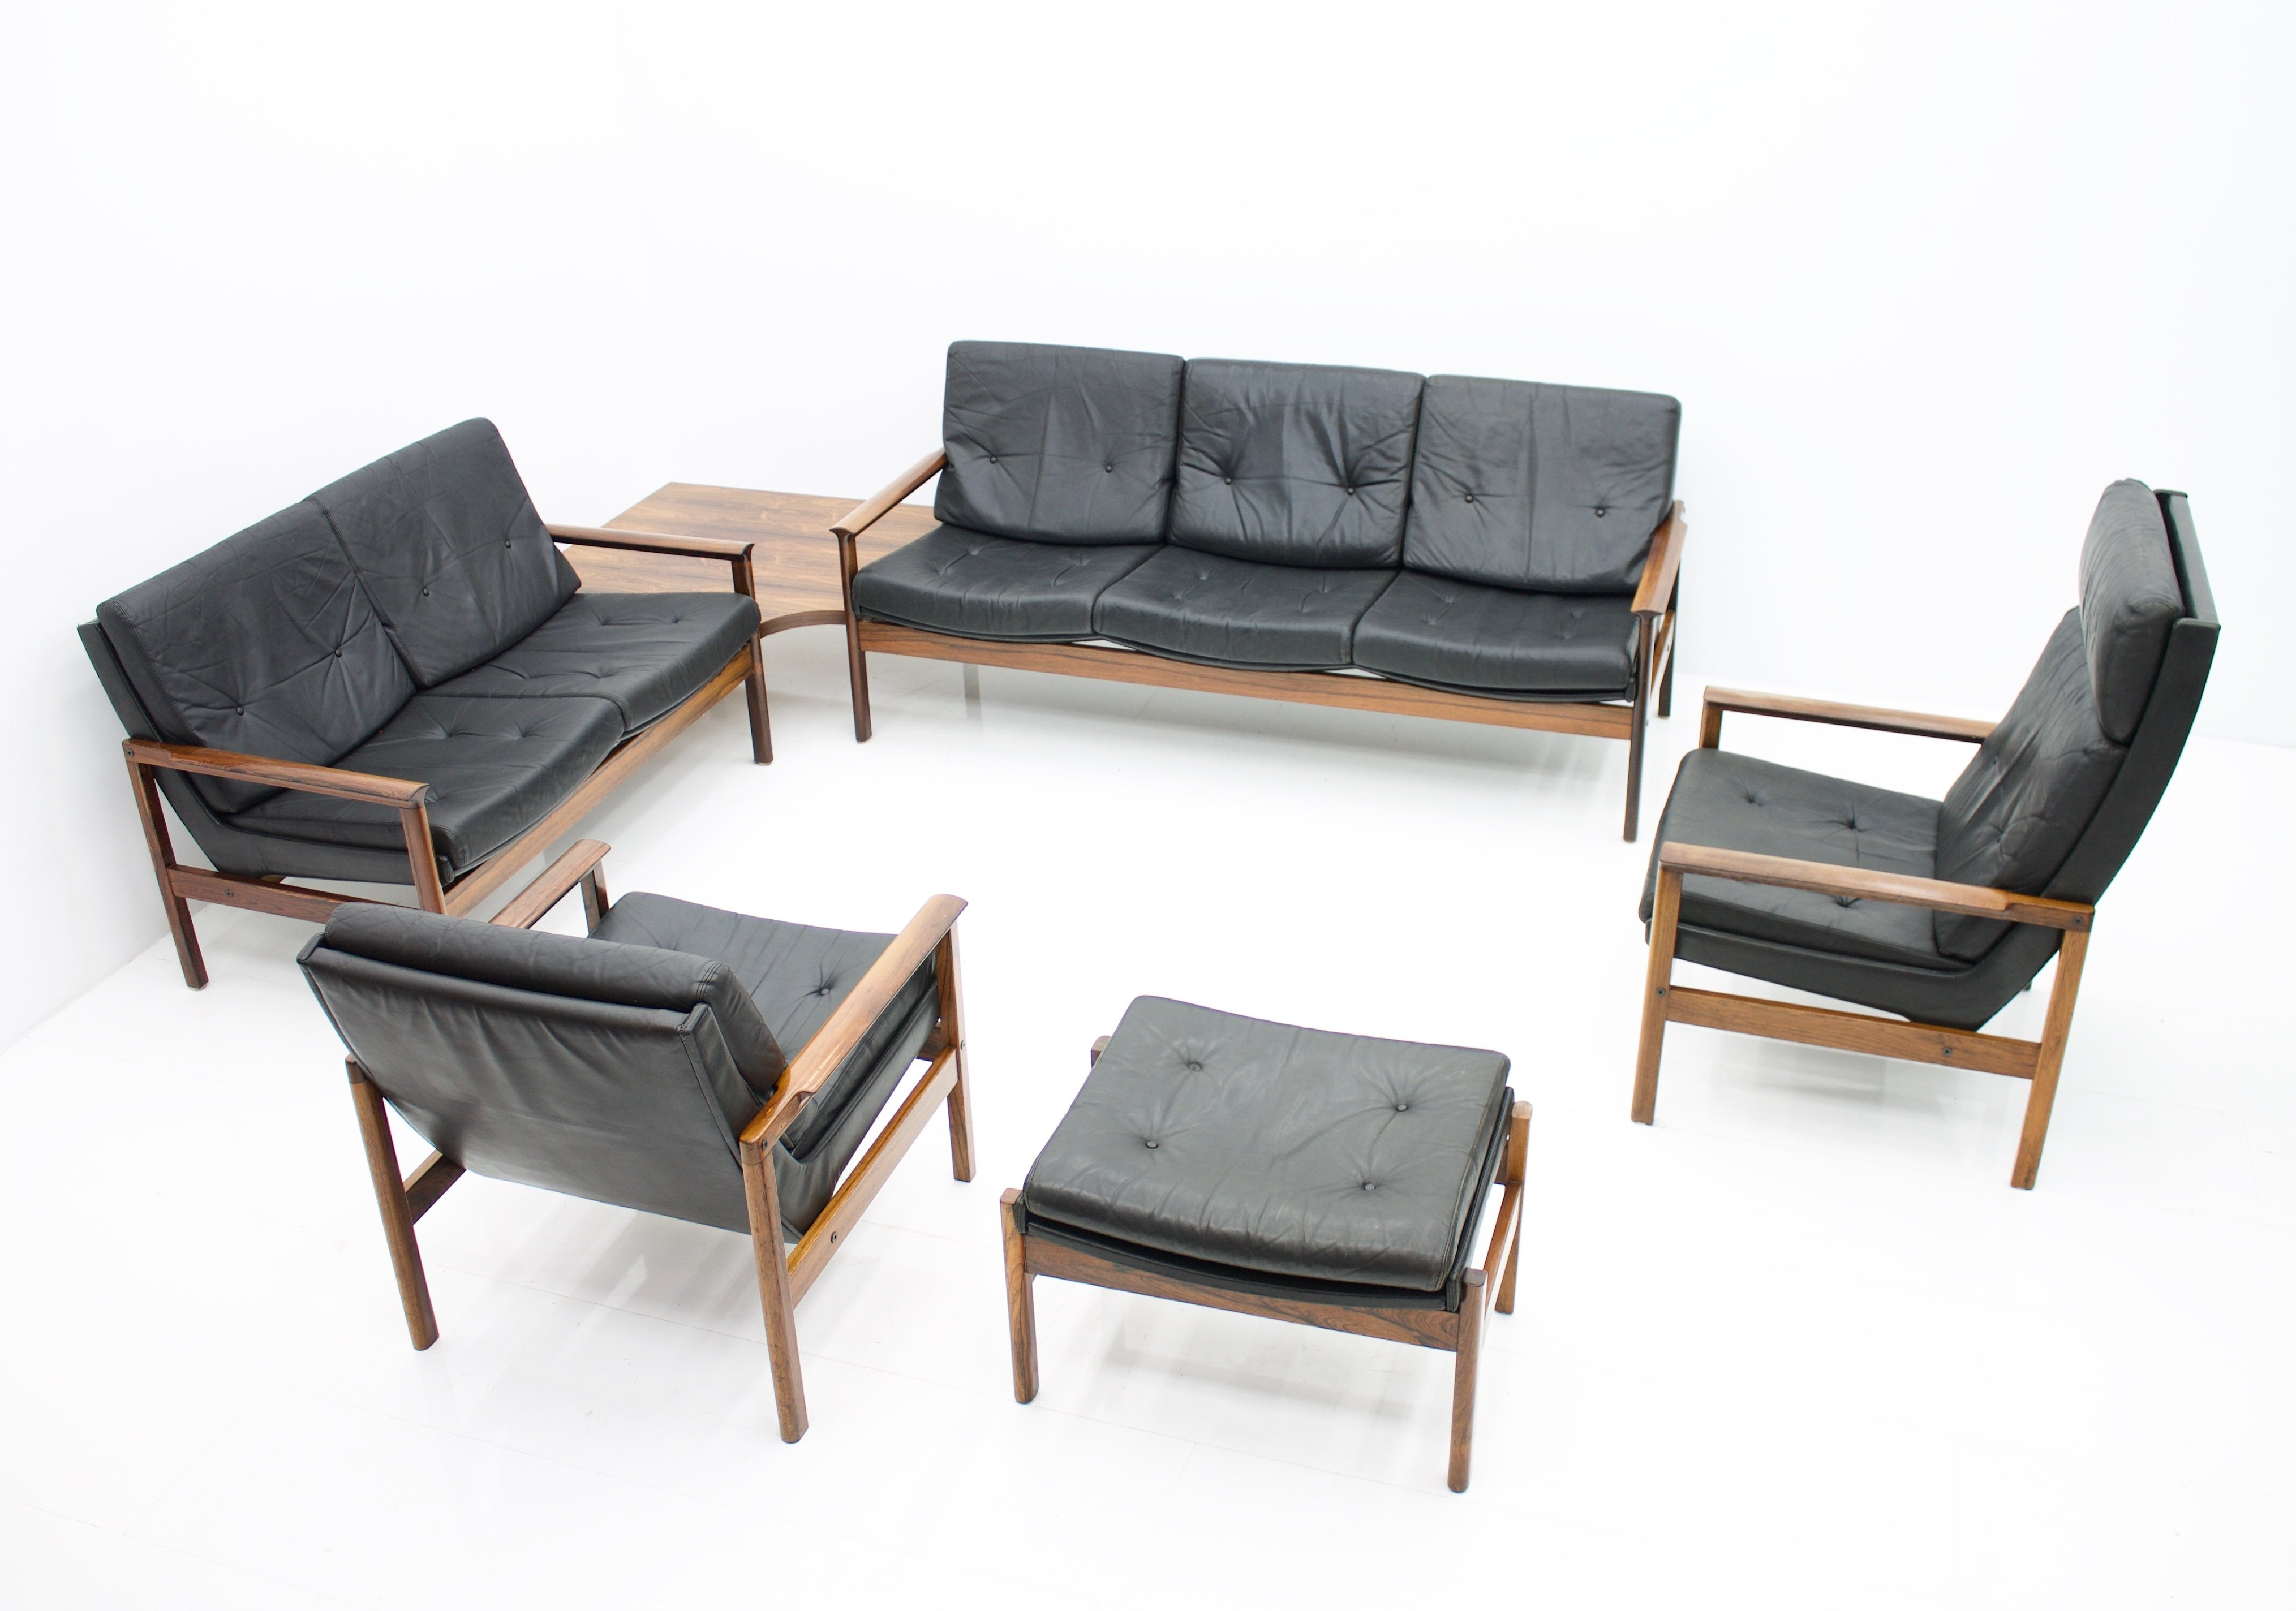 Scandinavian Living Room Set With 2 Sofas 2 Lounge Chairs